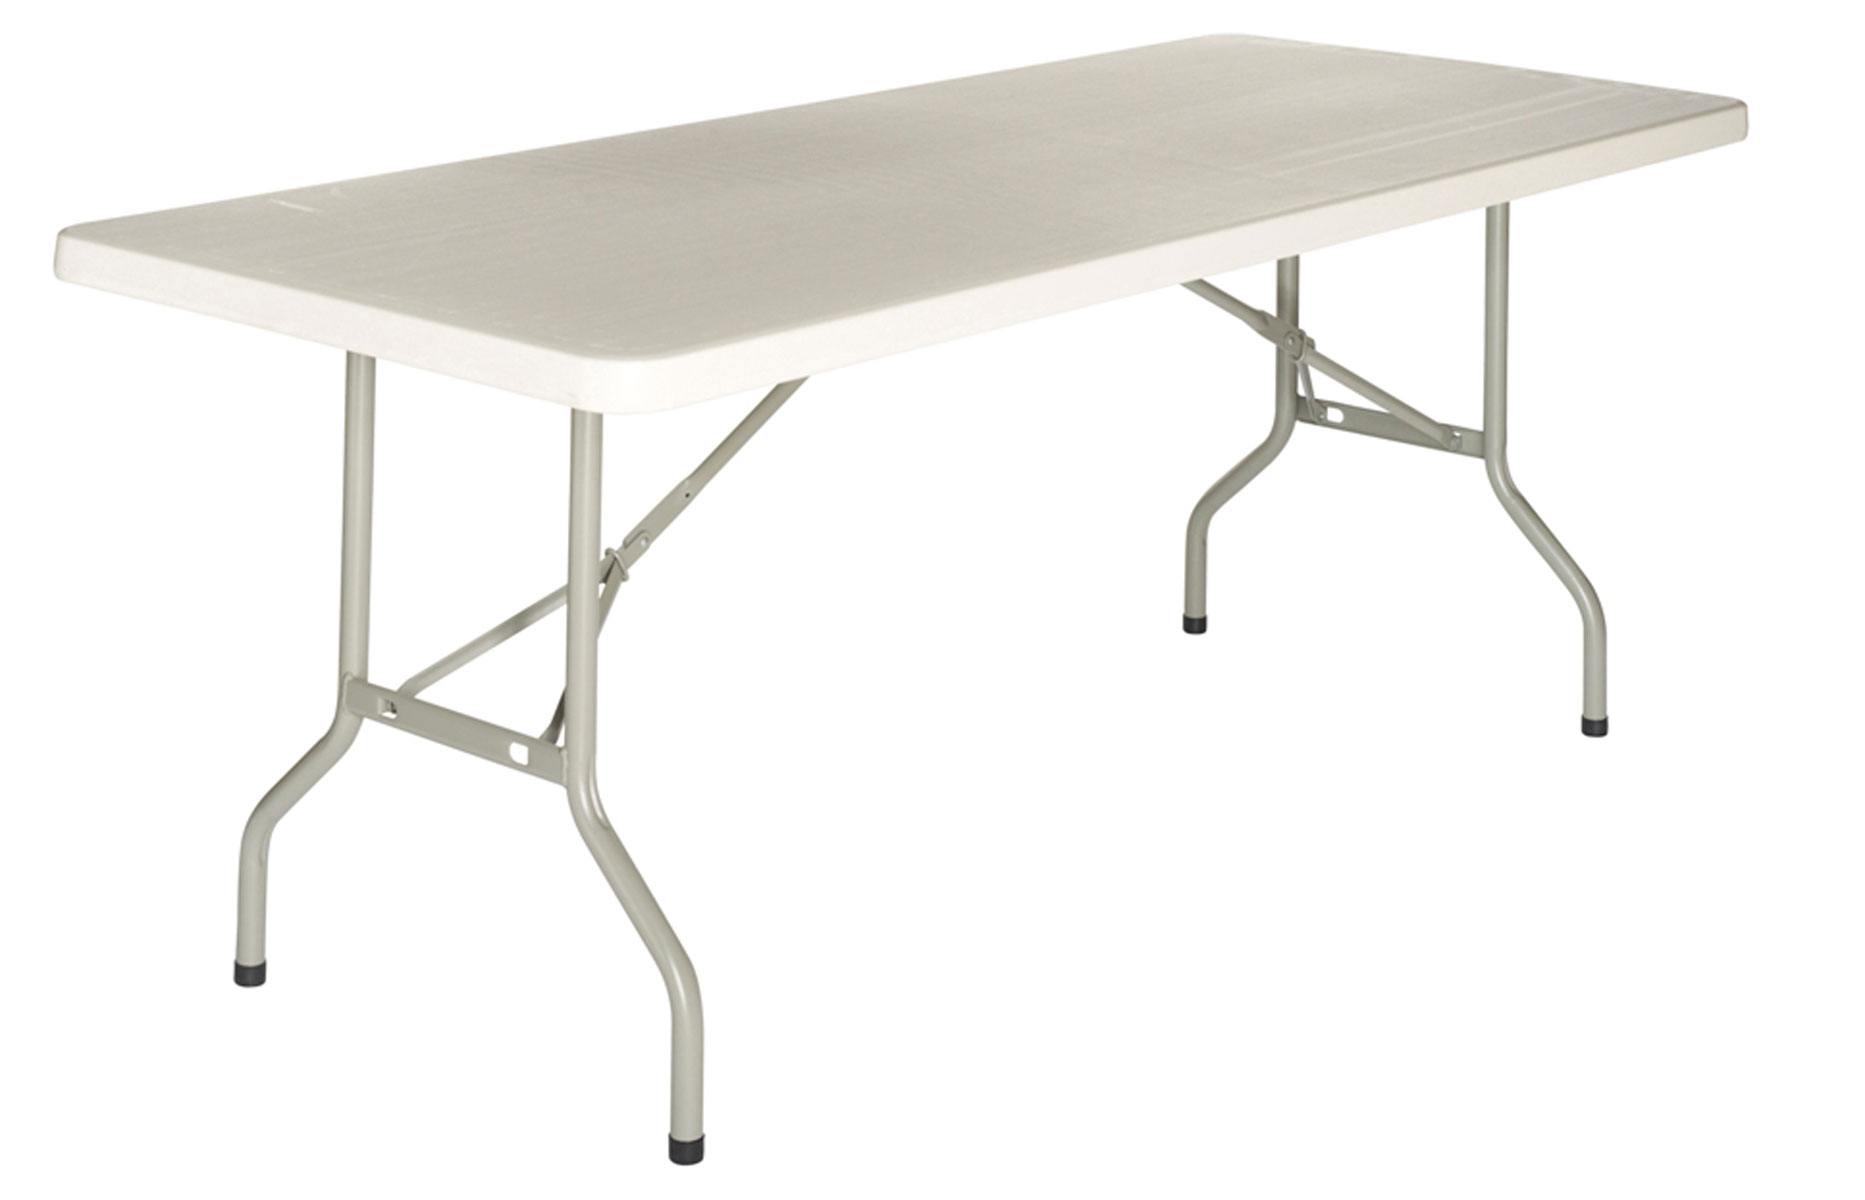 Table Pliante Exterieur Tulle Table Pliante